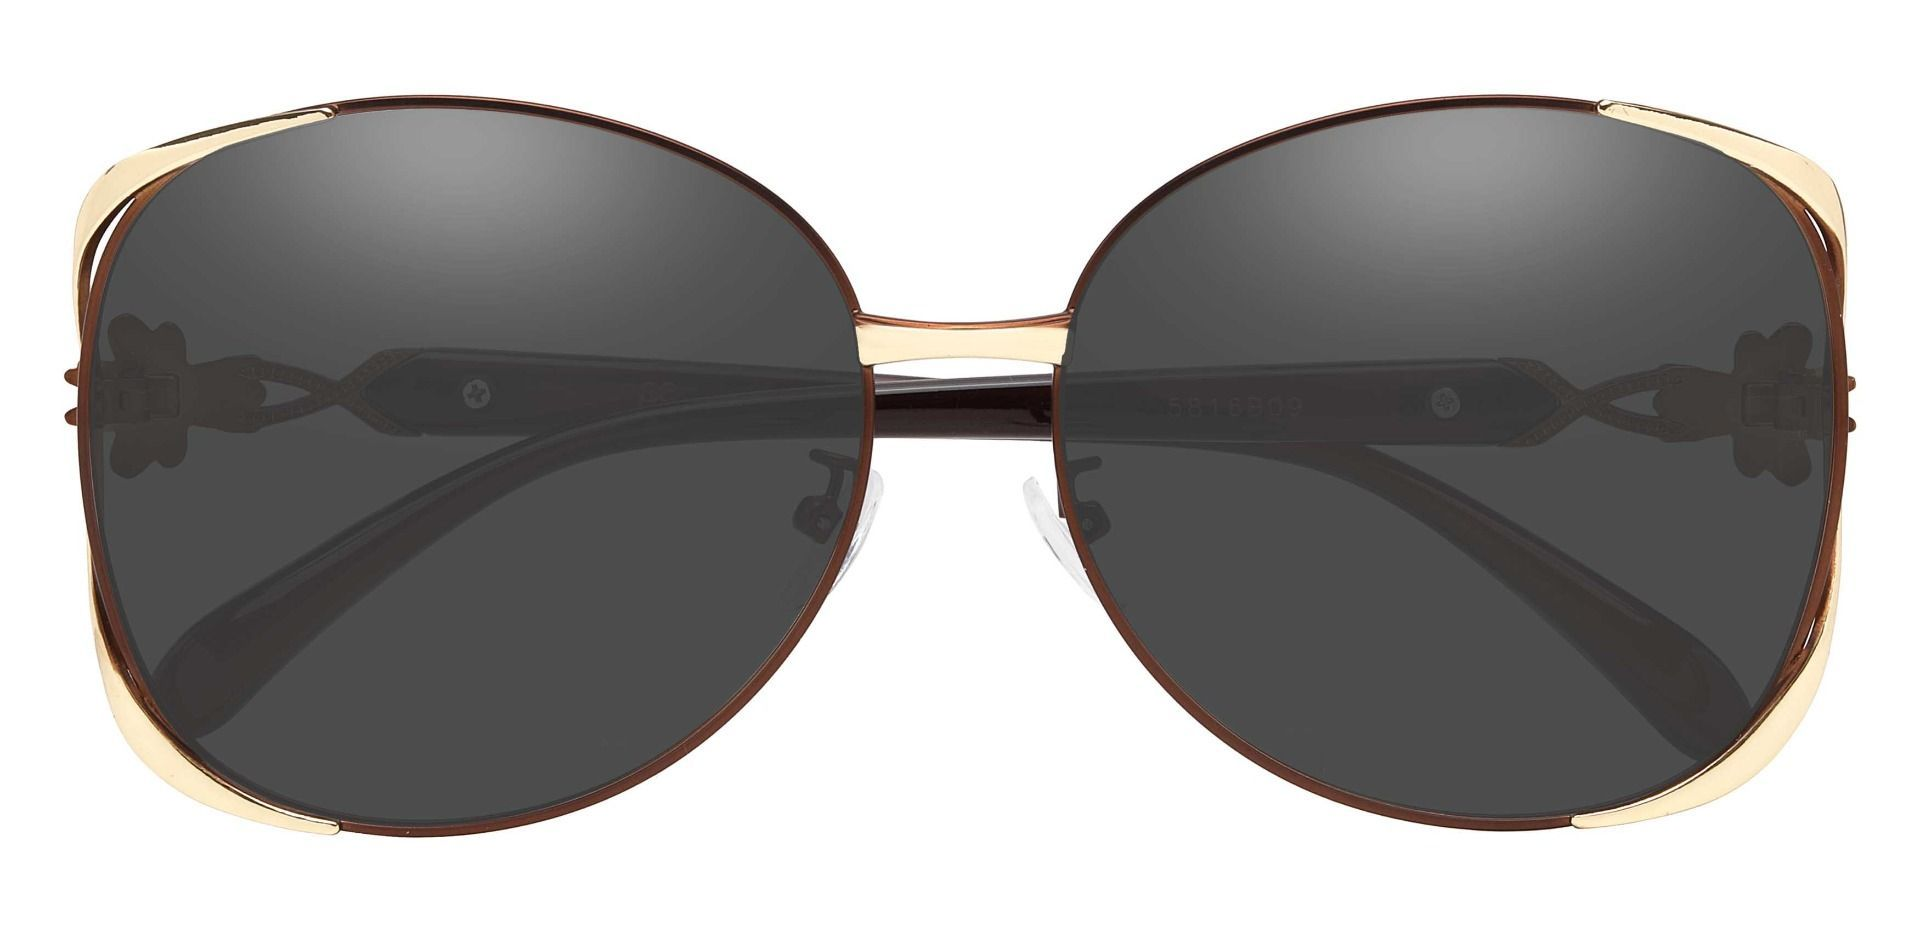 Nina Round Non-Rx Sunglasses - Brown Frame With Gray Lenses